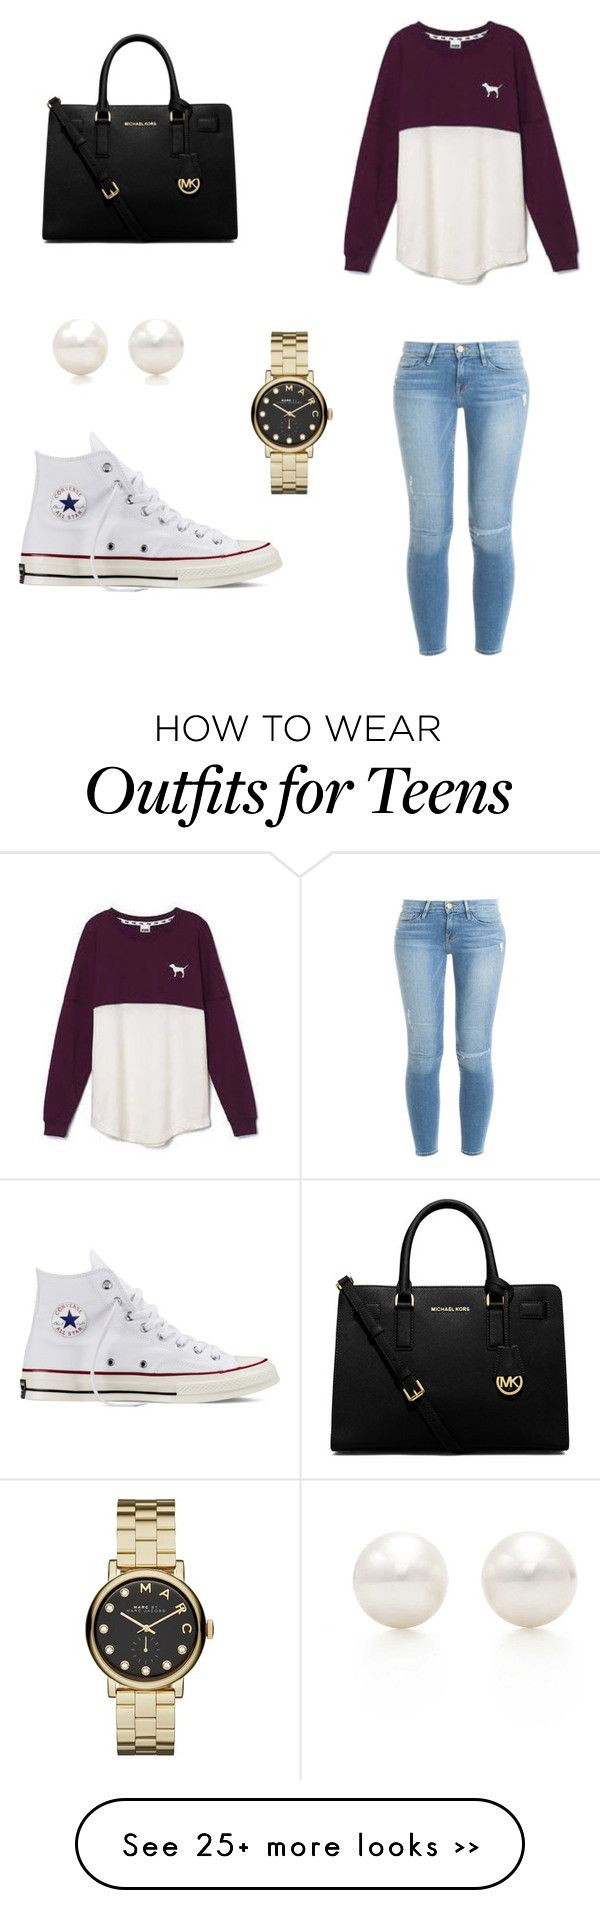 Quot Outfit For Teens Quot By Garzapaola On Polyvore Featuring